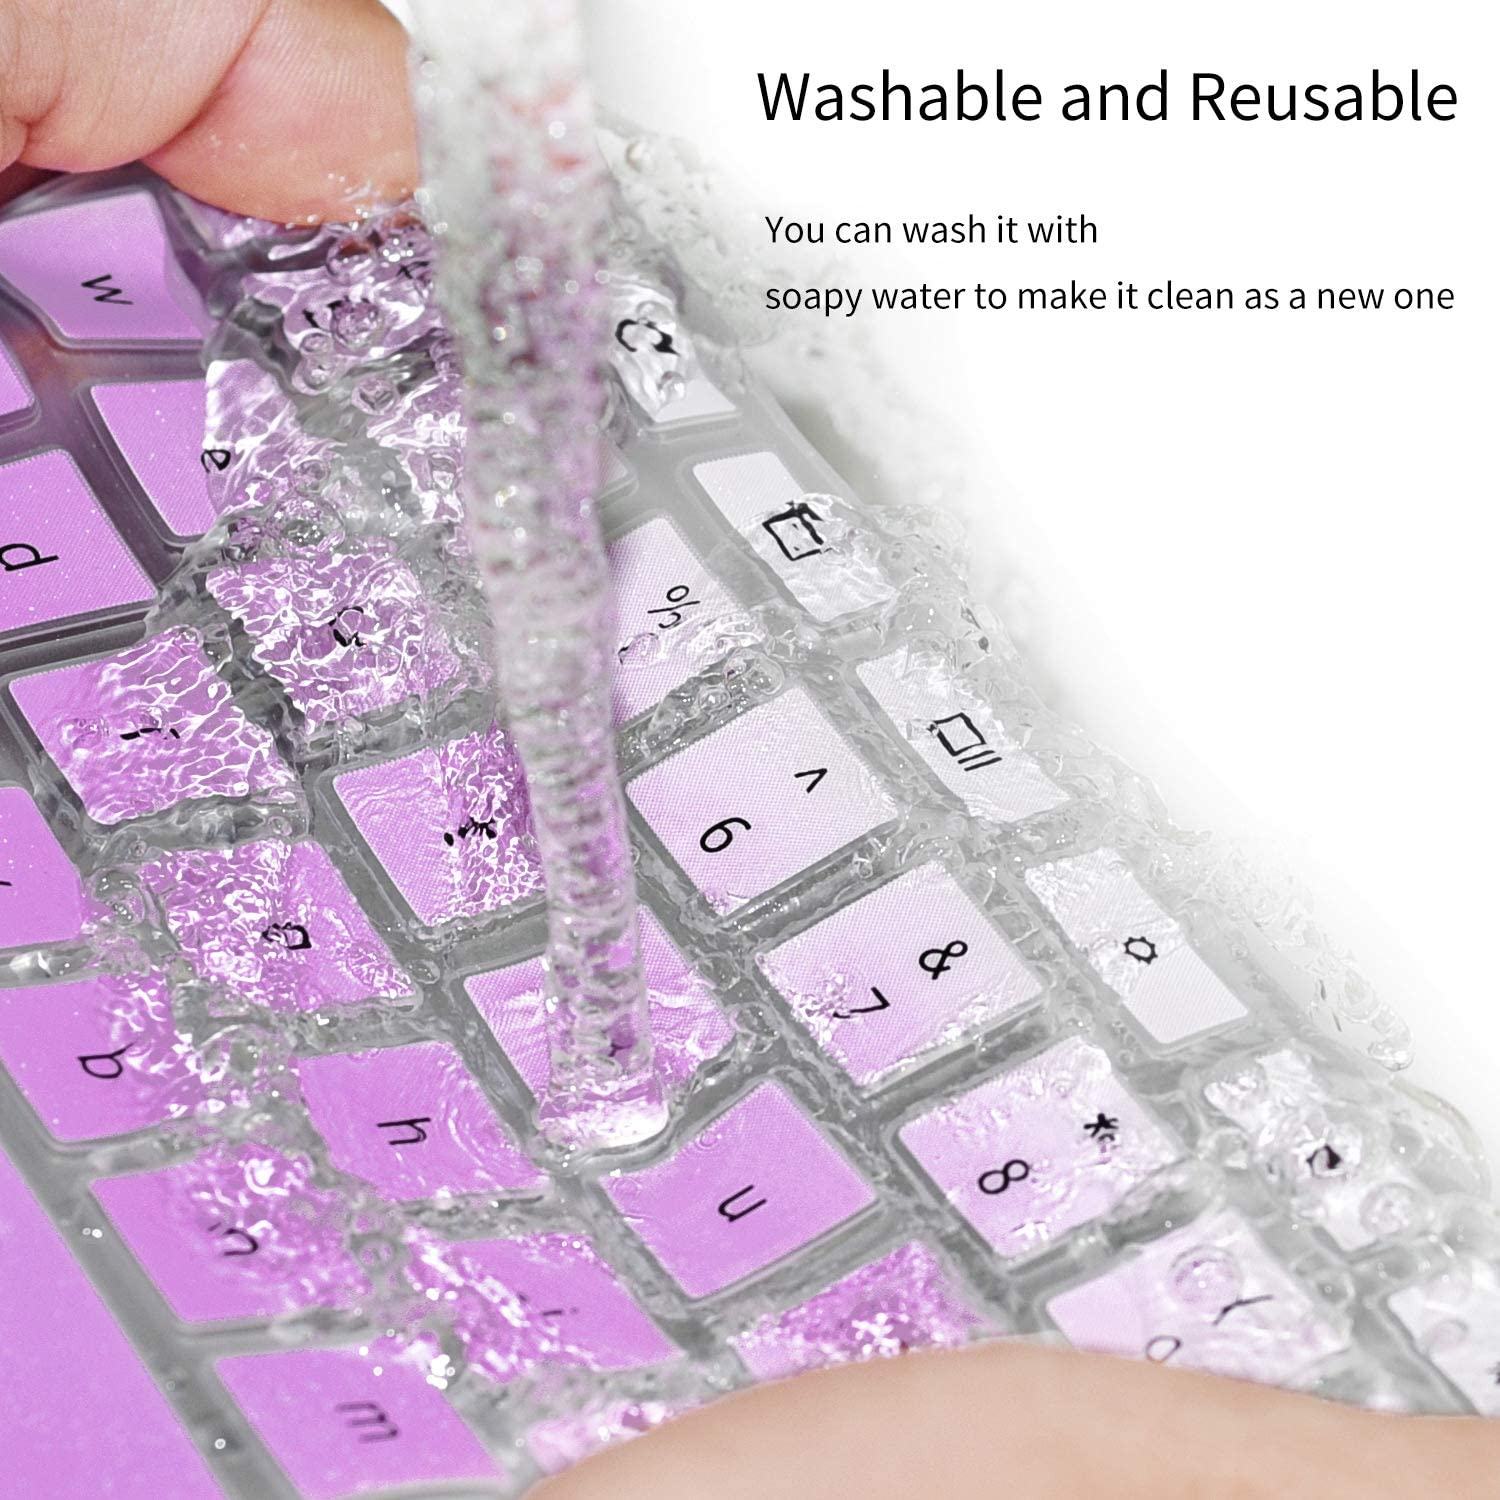 Ombre Purple CaseBuy Keyboard Cover for DELL XPS 13 9380 9370 9365 13.3 Laptop NOT Fit XPS 13 7390